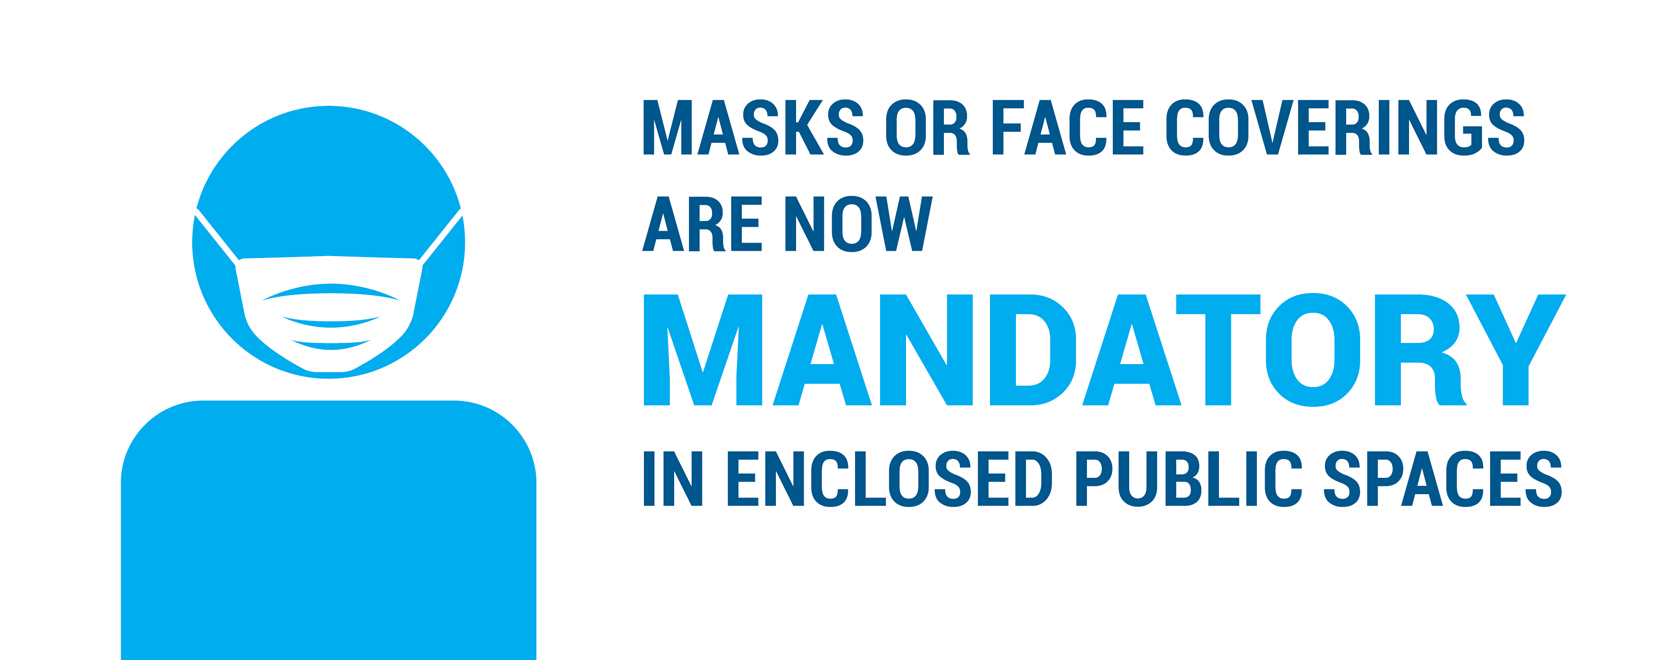 Text: Masks and face coverings are now mandatory in enclosed public spaces